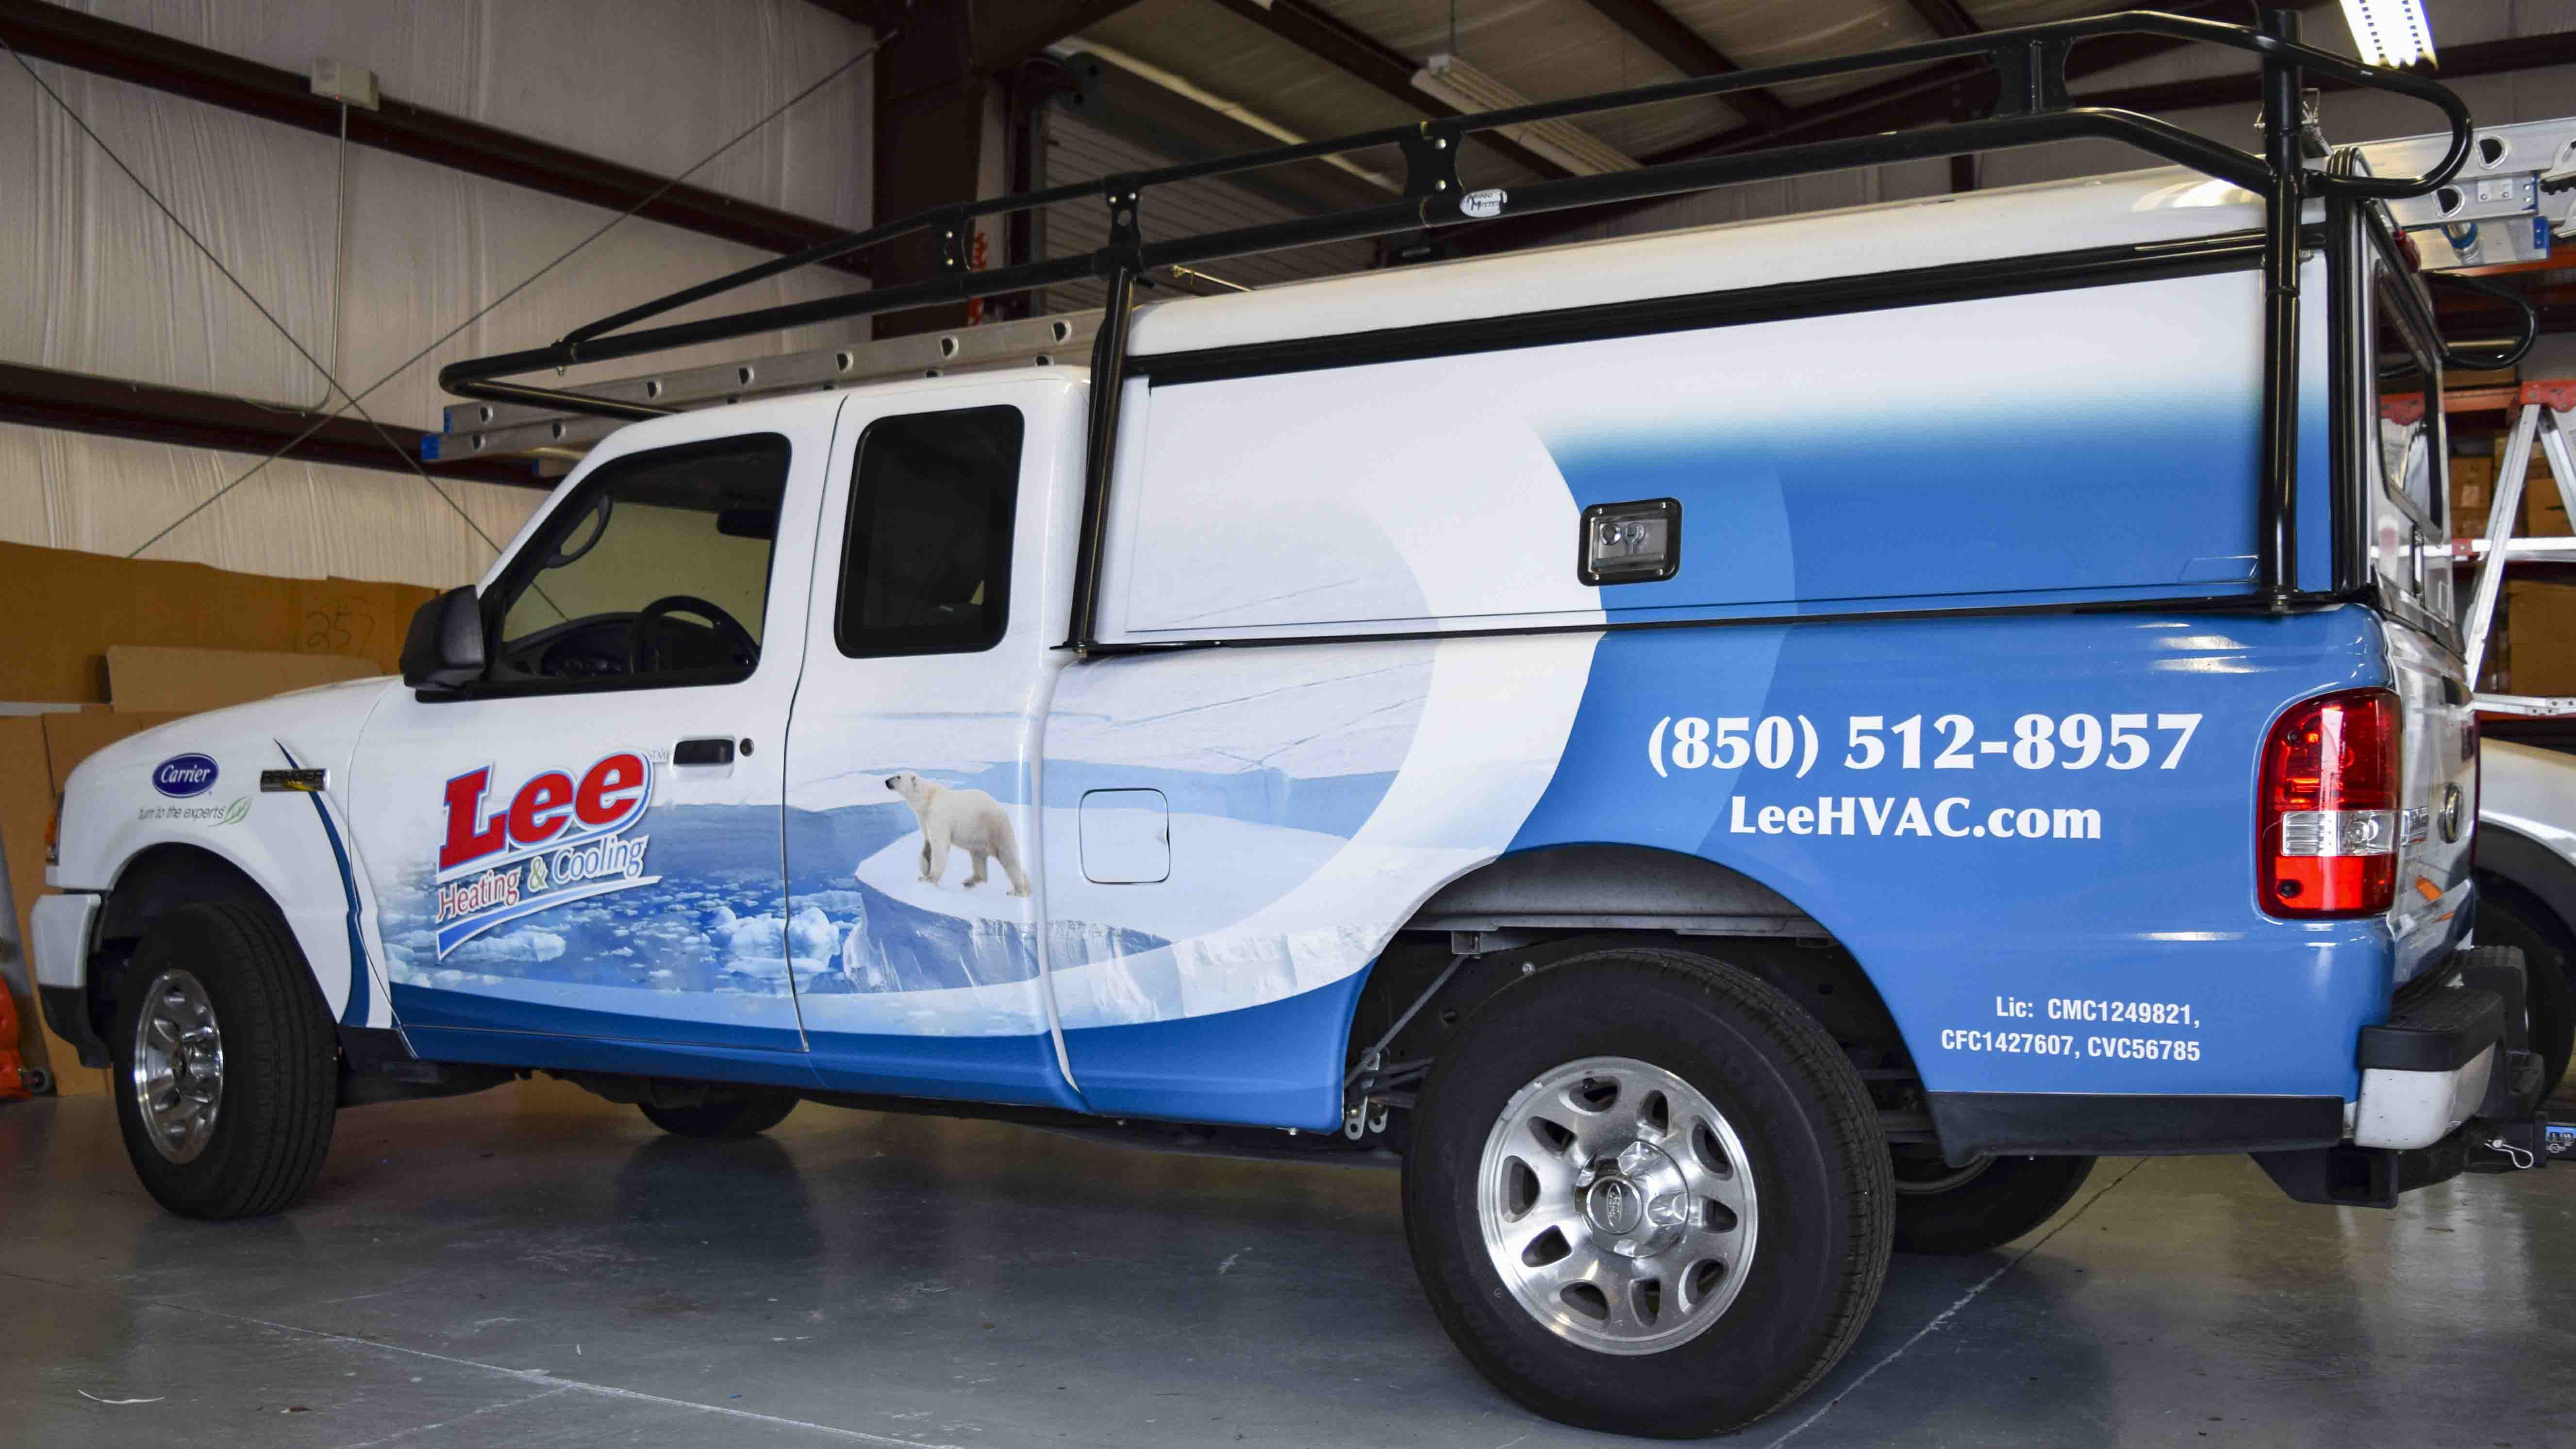 Pensacola Sign - Vehicle Wrap for Lee heating and Cooling